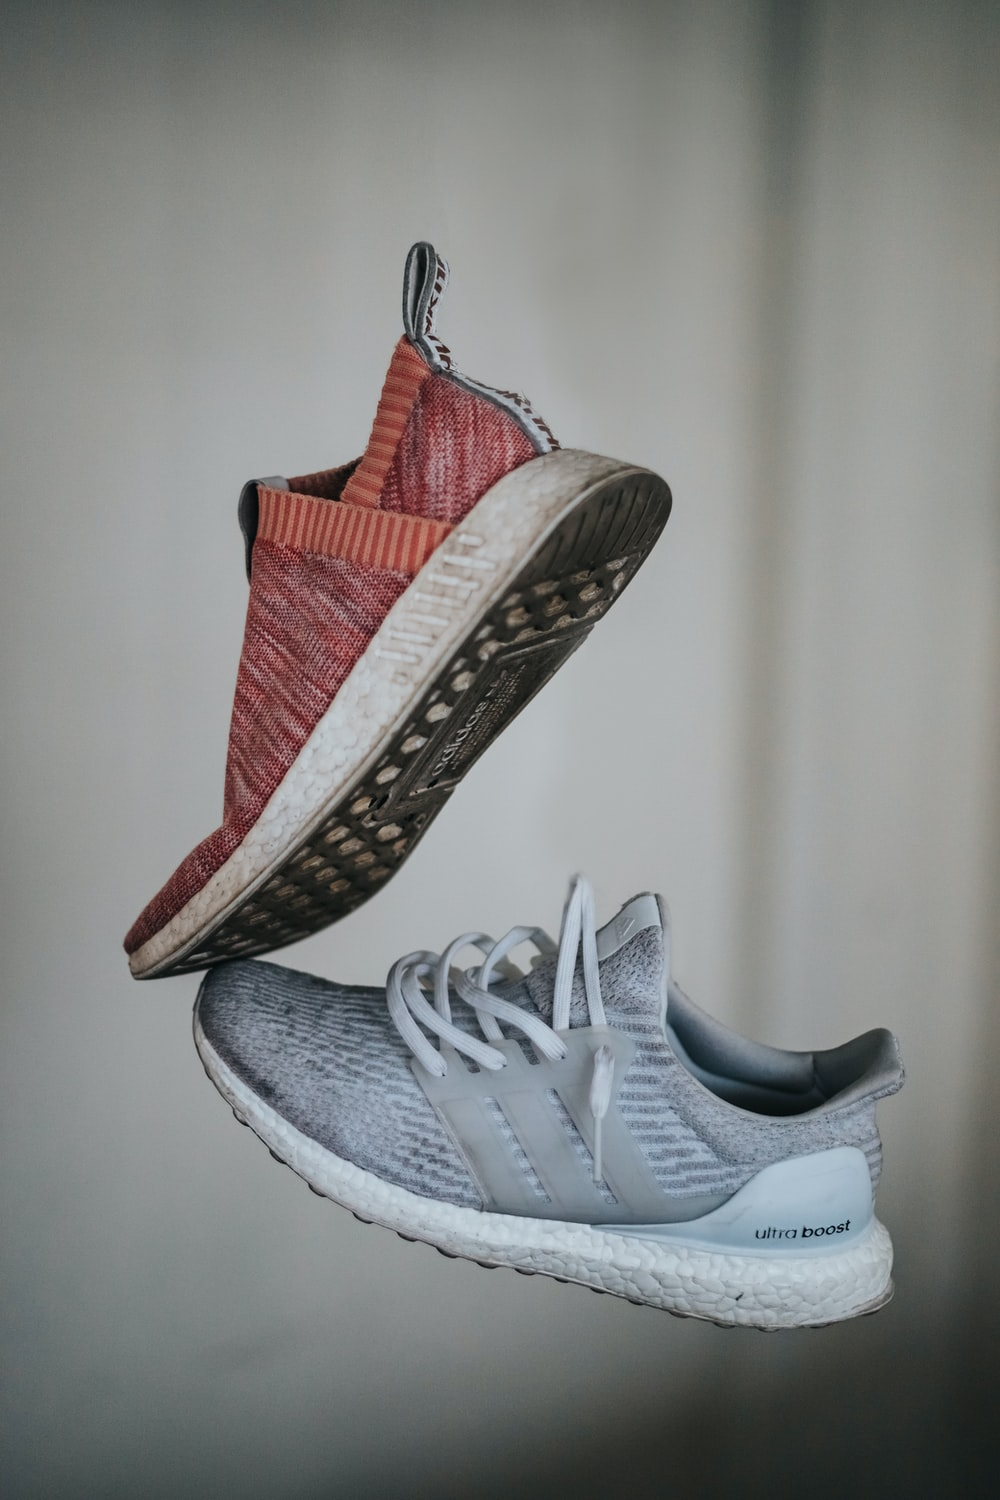 two unpaired brown and gray adidas running sneakers